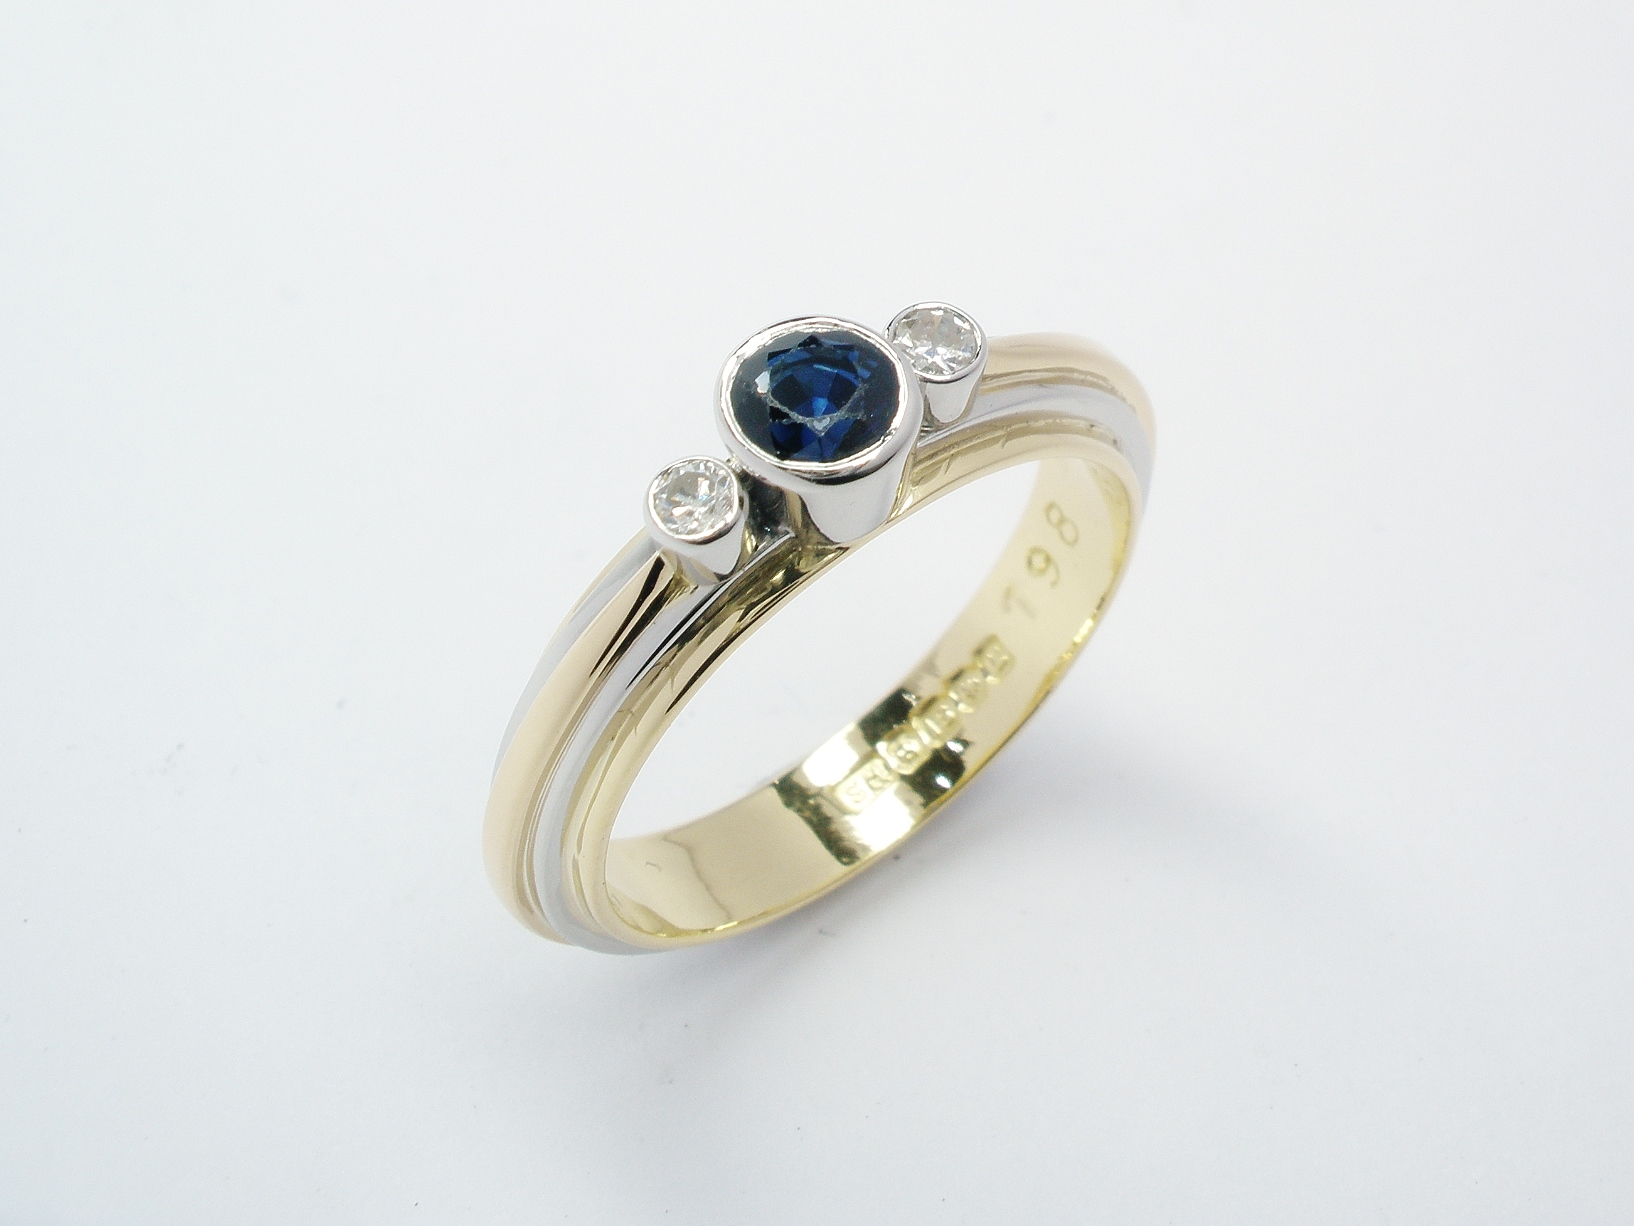 Using the wedding ring as the main ring applied a narrower platinum band over this, rub-over set the diamonds and sapphire & applied.